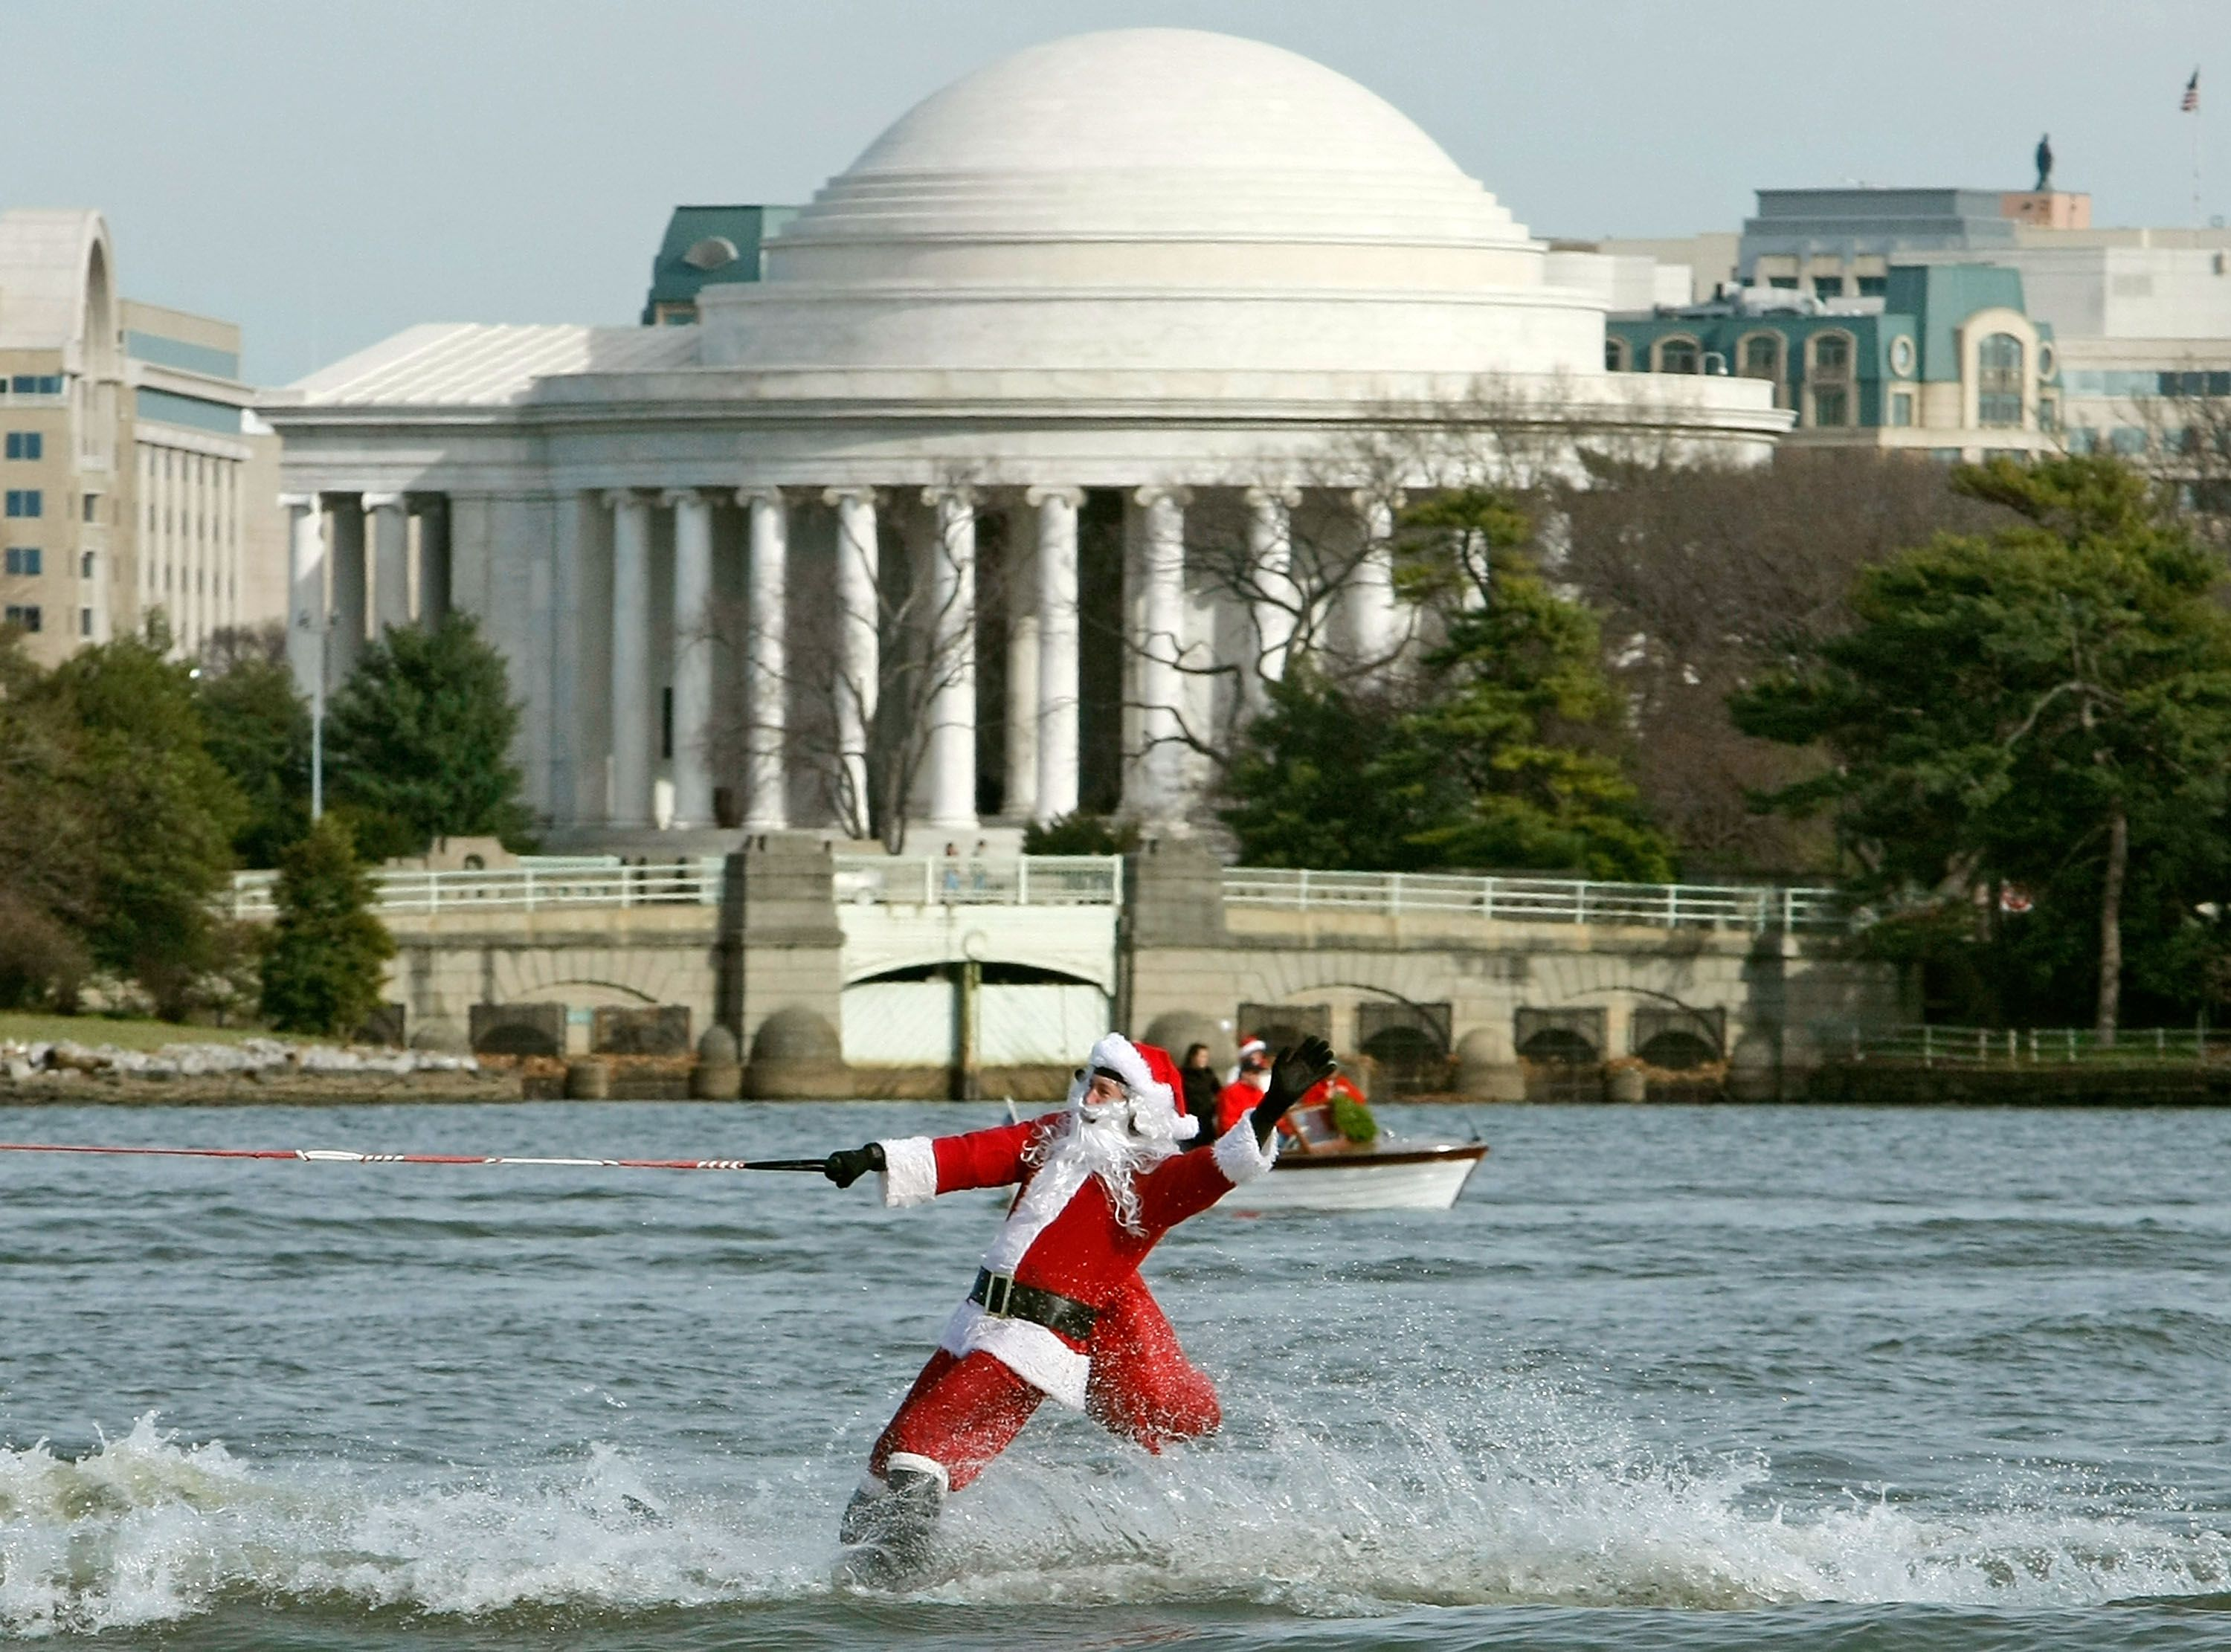 Santa Claus Waterskis On The Potomac River